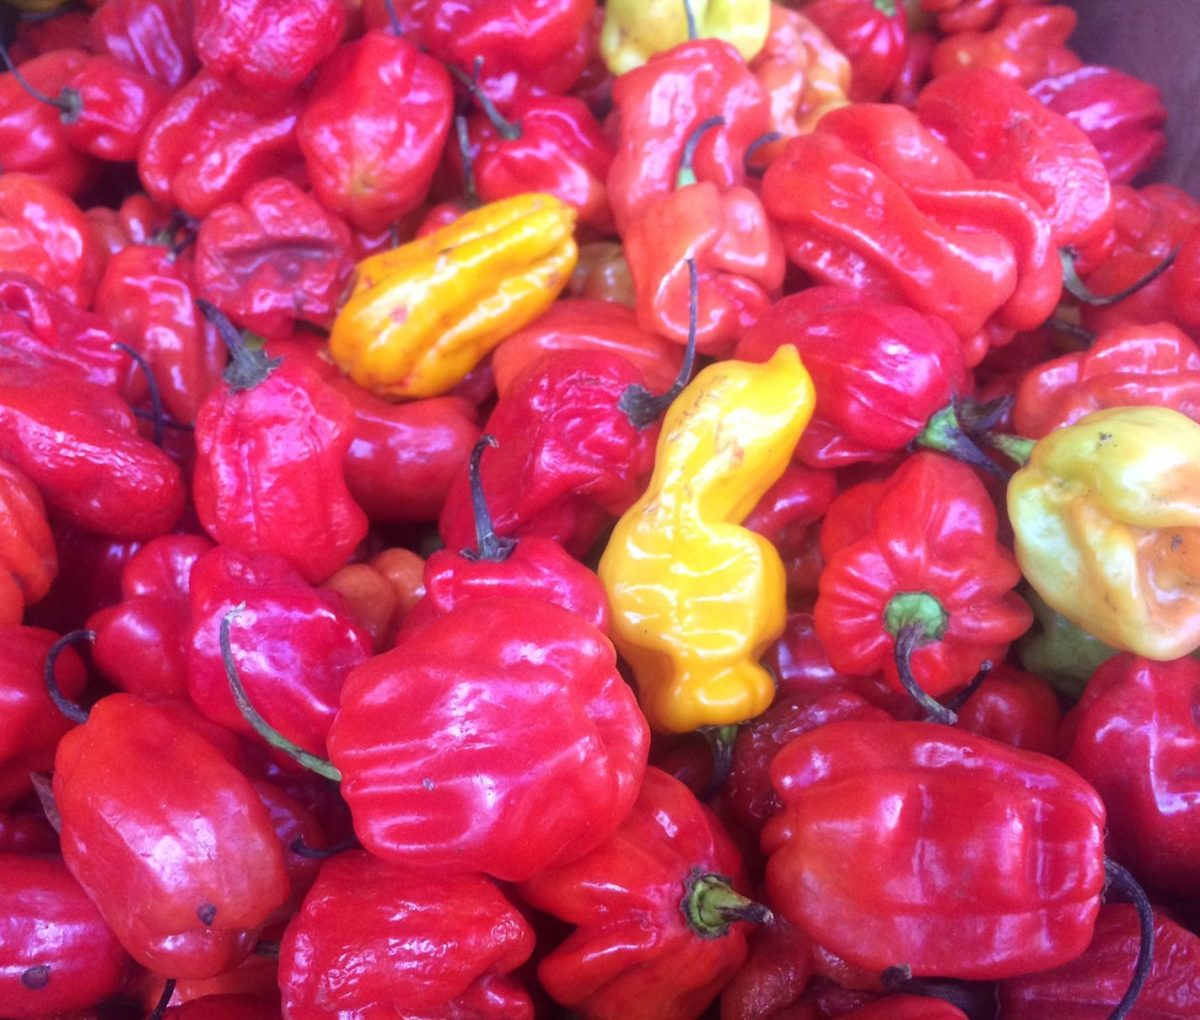 Pili pili peppers - vegan travel in the Congo (DRC)